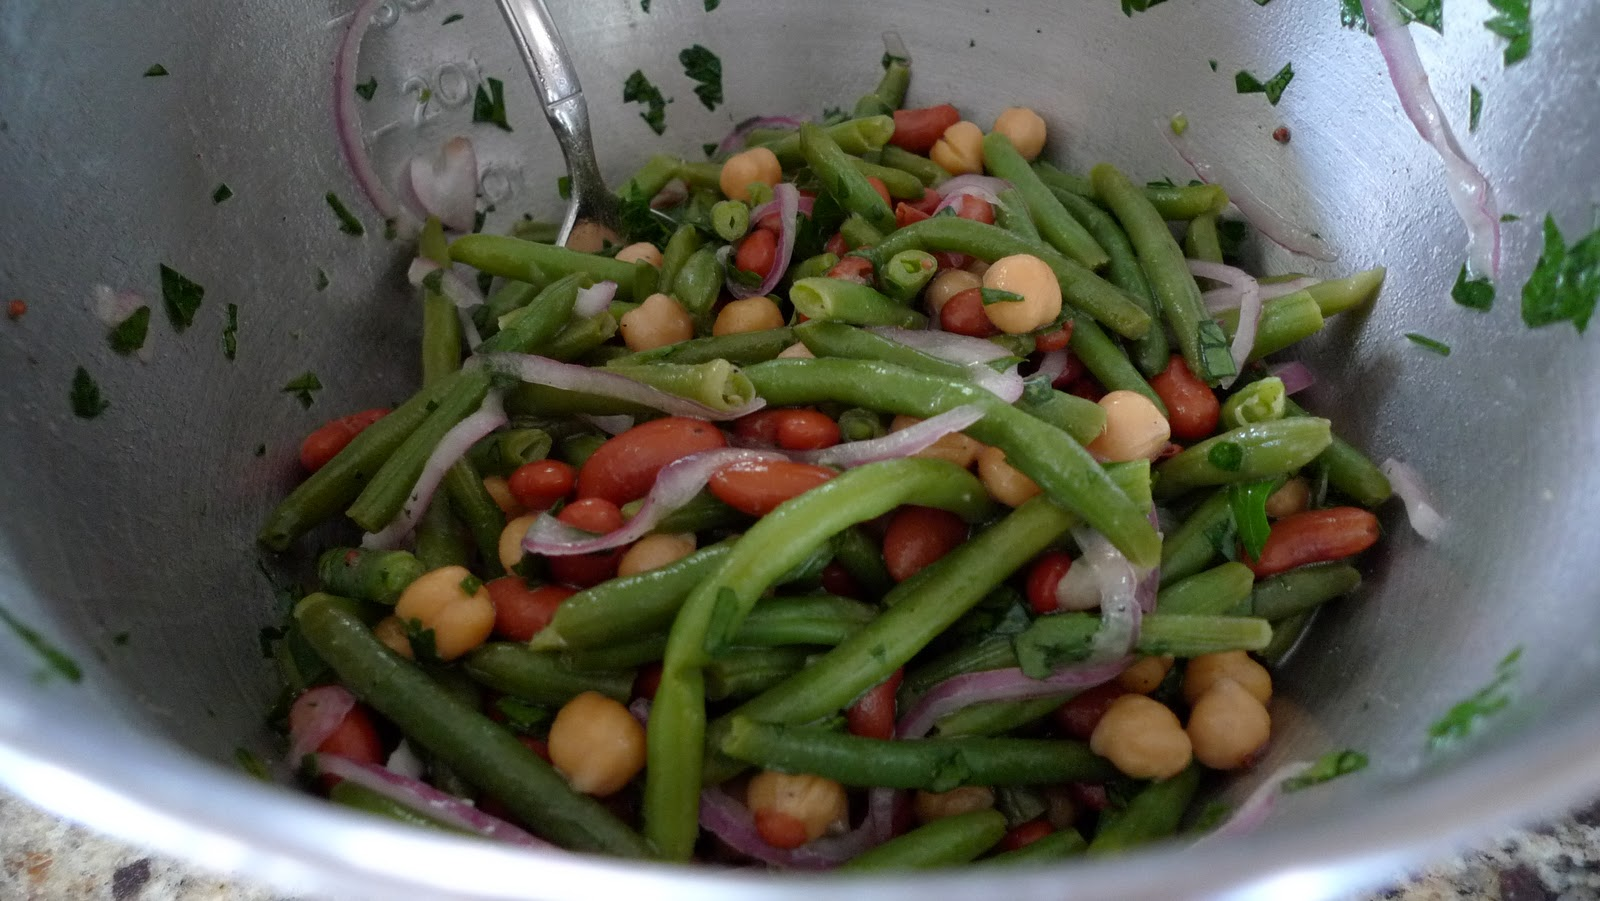 Mingling of Tastes: Three-Bean Salad